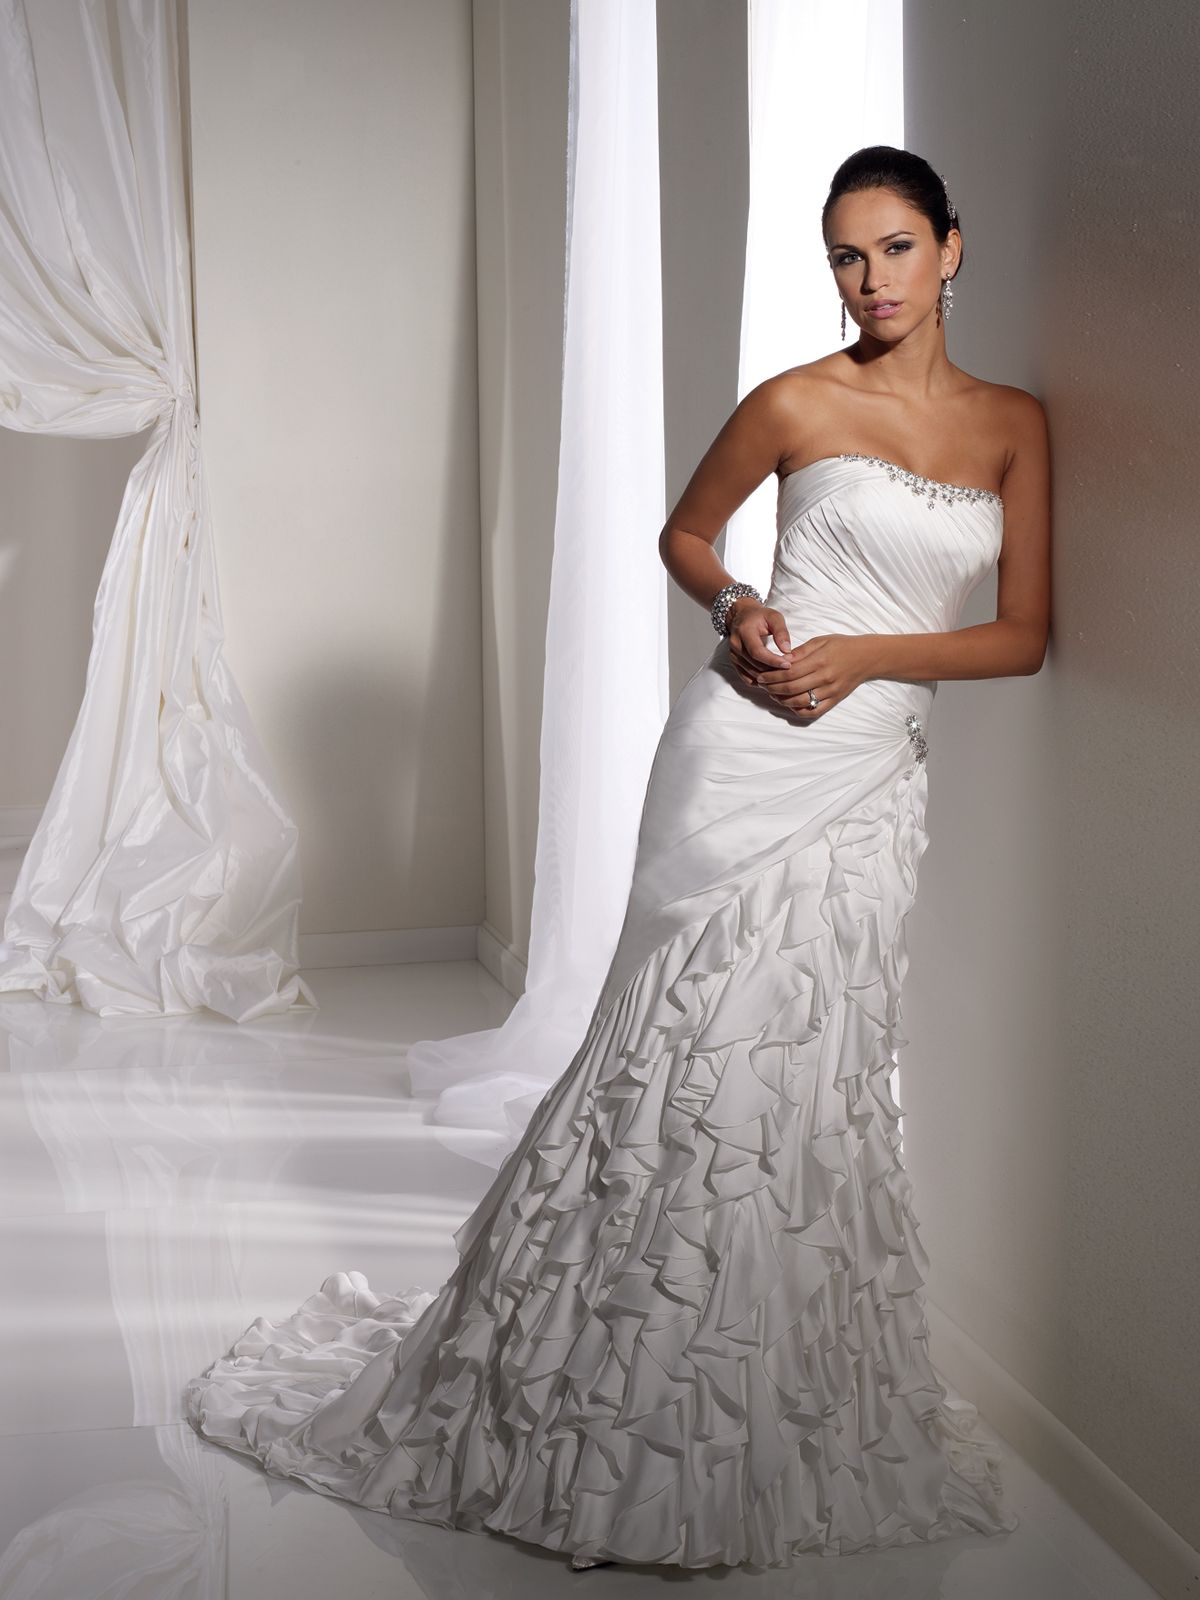 What do you guys think about the ruffles designer wedding dresses